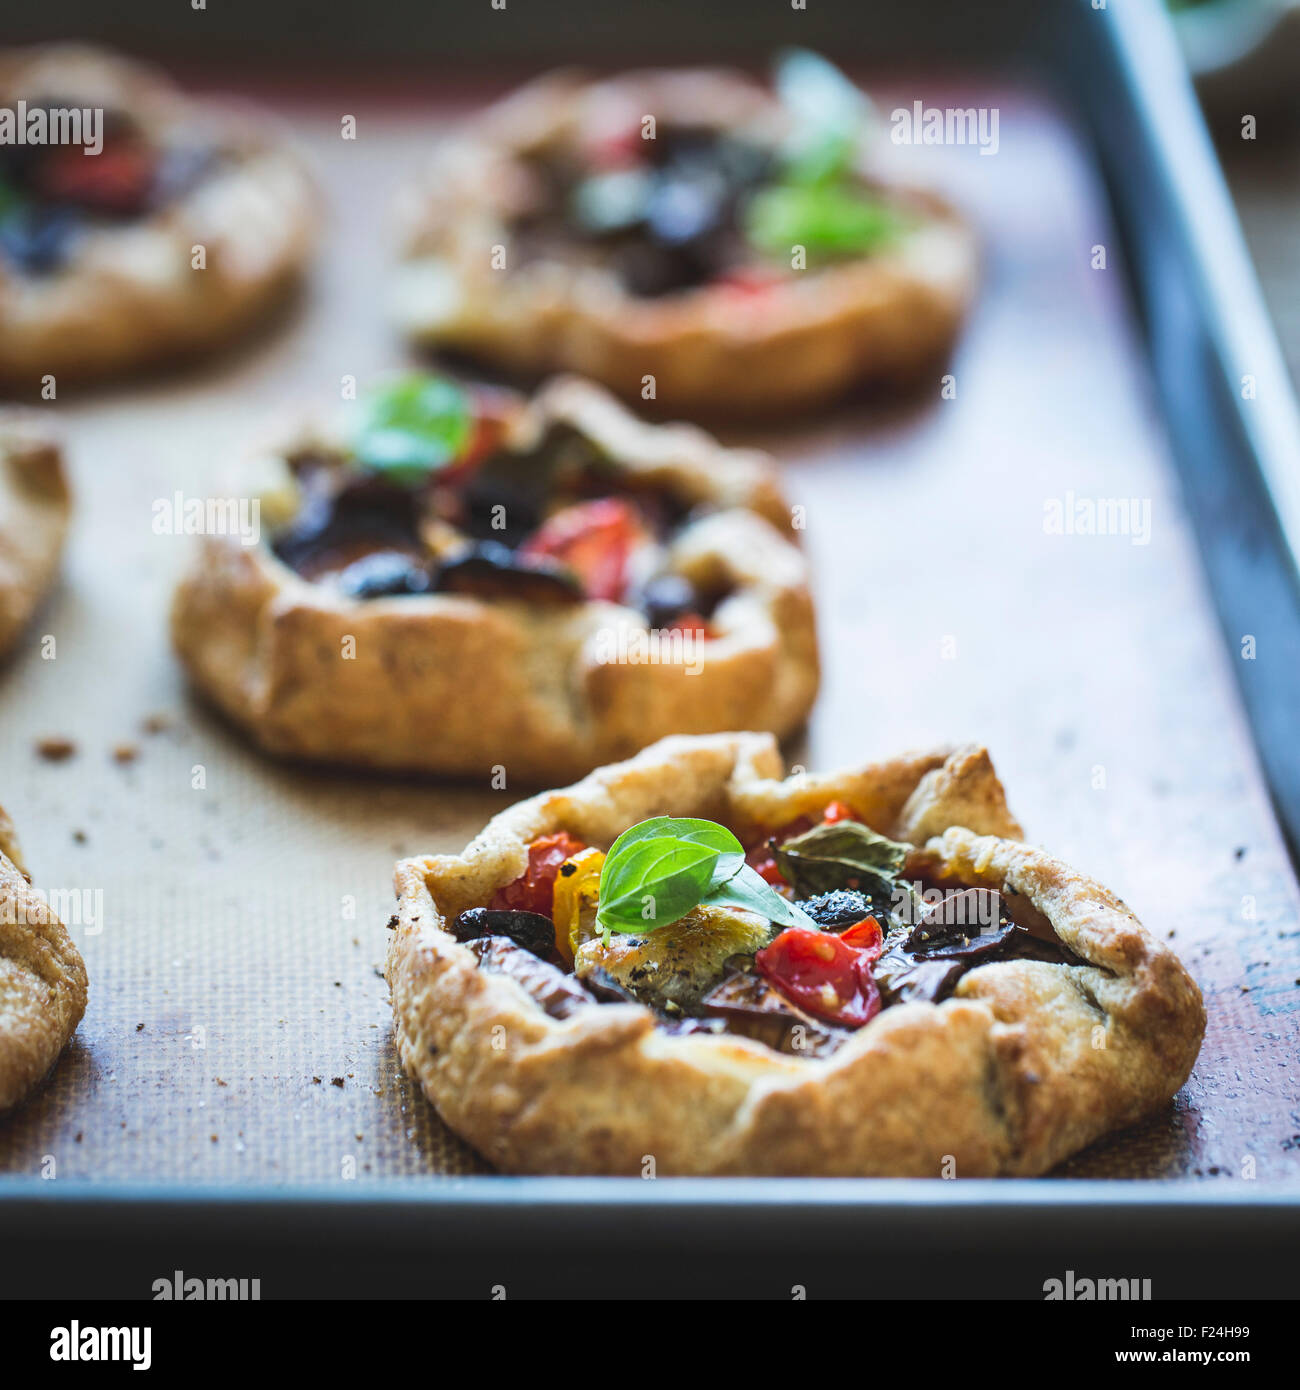 Savoury eggplant galettes with olives, tomatoes and basil. - Stock Image